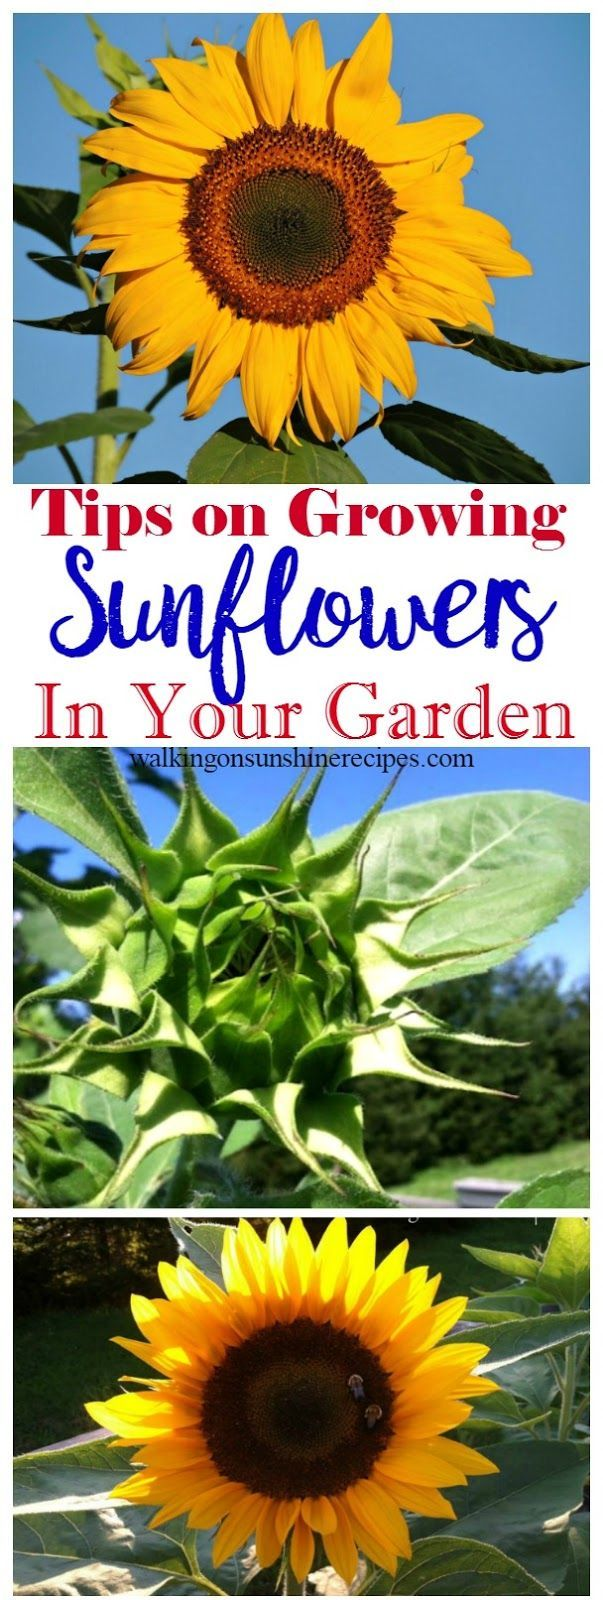 Sunflower Garden Ideas how to grow huge sunflowers 5 Tips For Growing Sunflowers In Your Garden Is This Weeks Thursdays Tip From Walking On